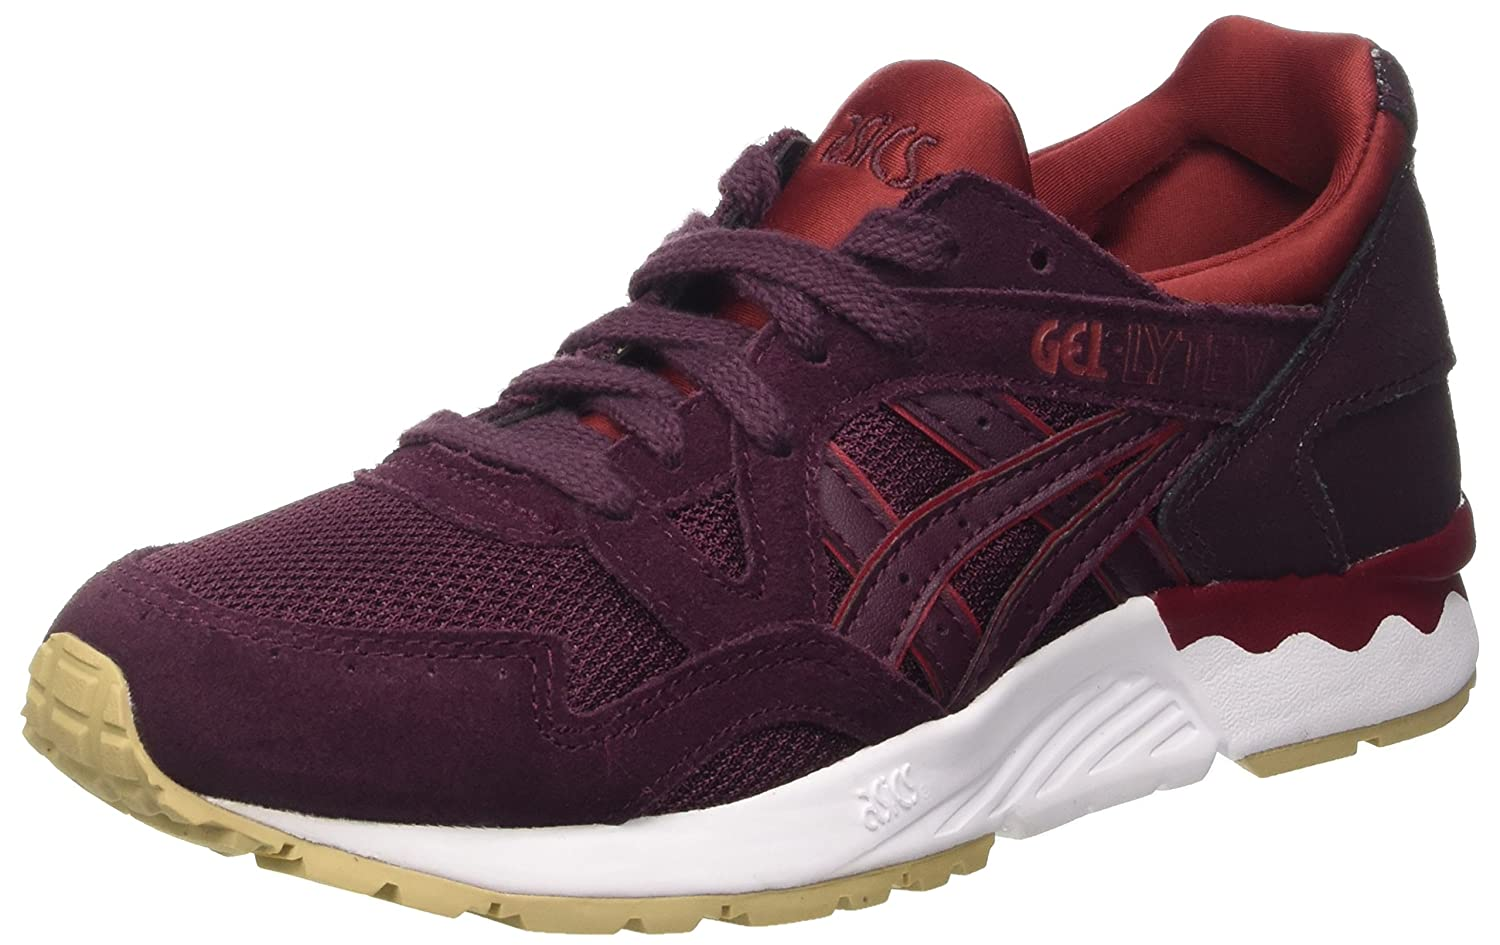 Asics H6q4l, Chaussures Mixte Chaussures Adulte Rouge (Rioja Red/Rioja (Rioja Red/Rioja Red) 395e381 - therethere.space